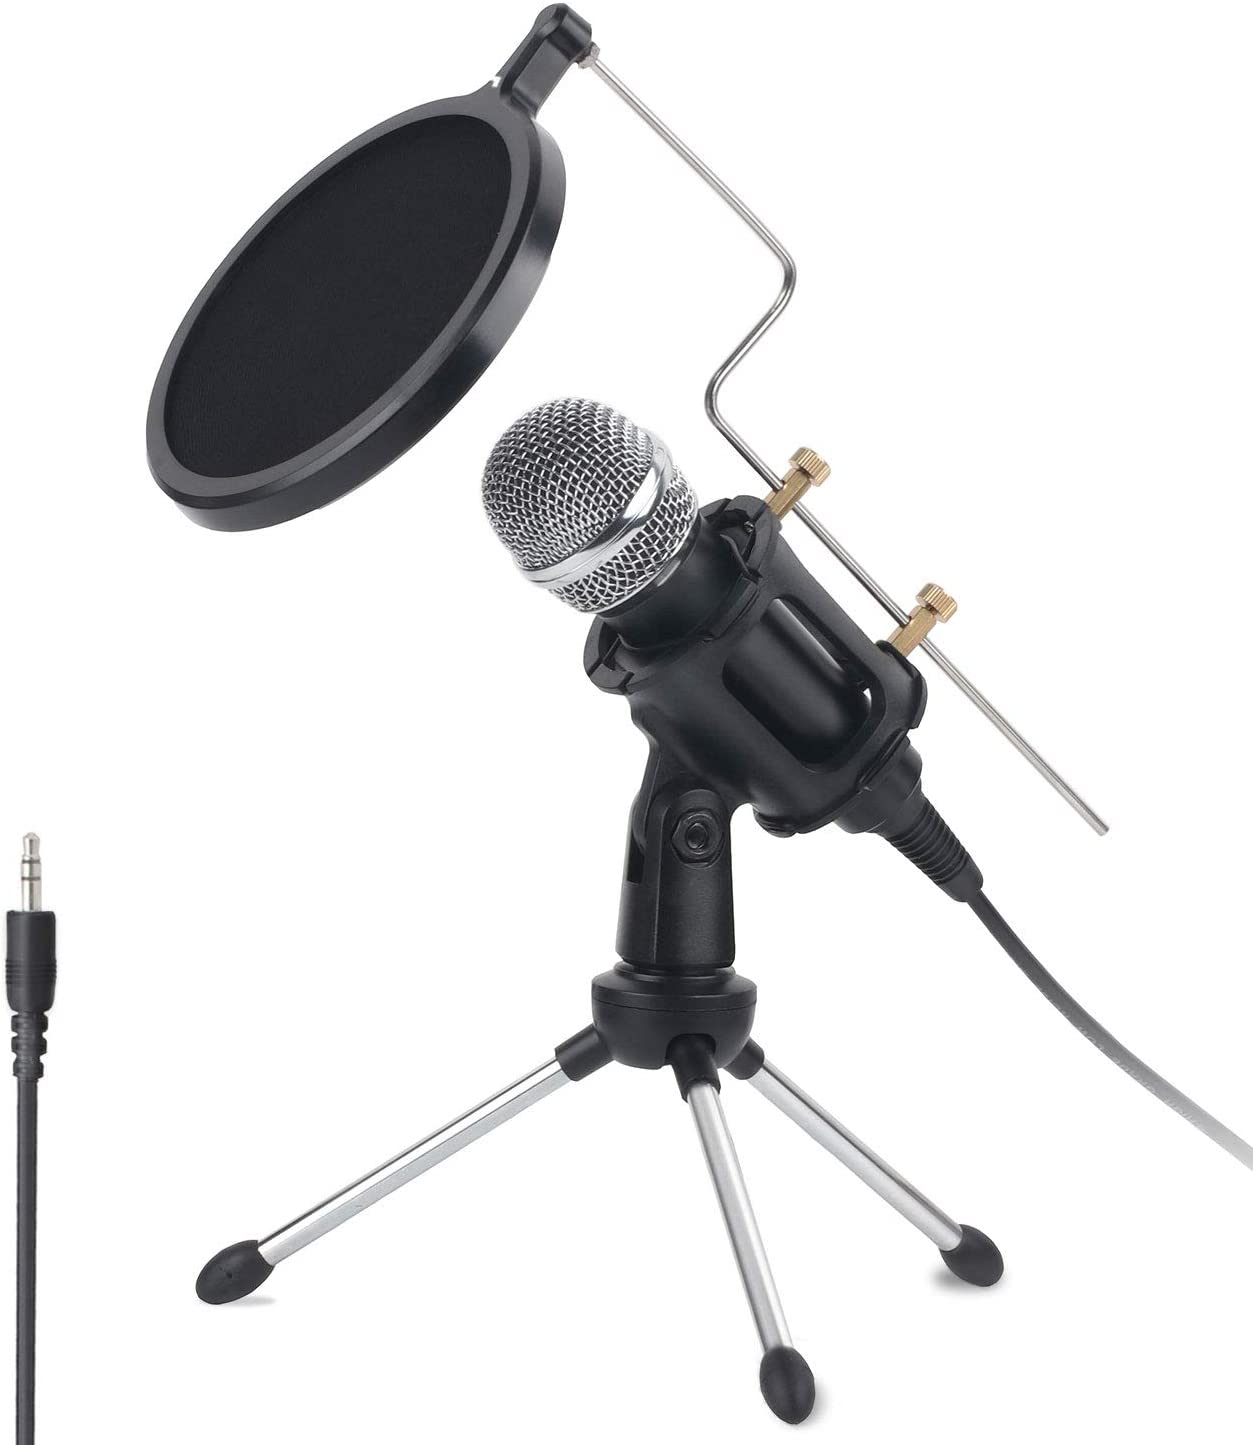 3.5mm PC Microphone Computer Studio Condenser Mic with Tripod Stand & Pop Filter for YouTube Skype Gaming Singing, Streaming, Podcasting, Vocal Recording, for Phones Mac PC Laptop Desktop Windows